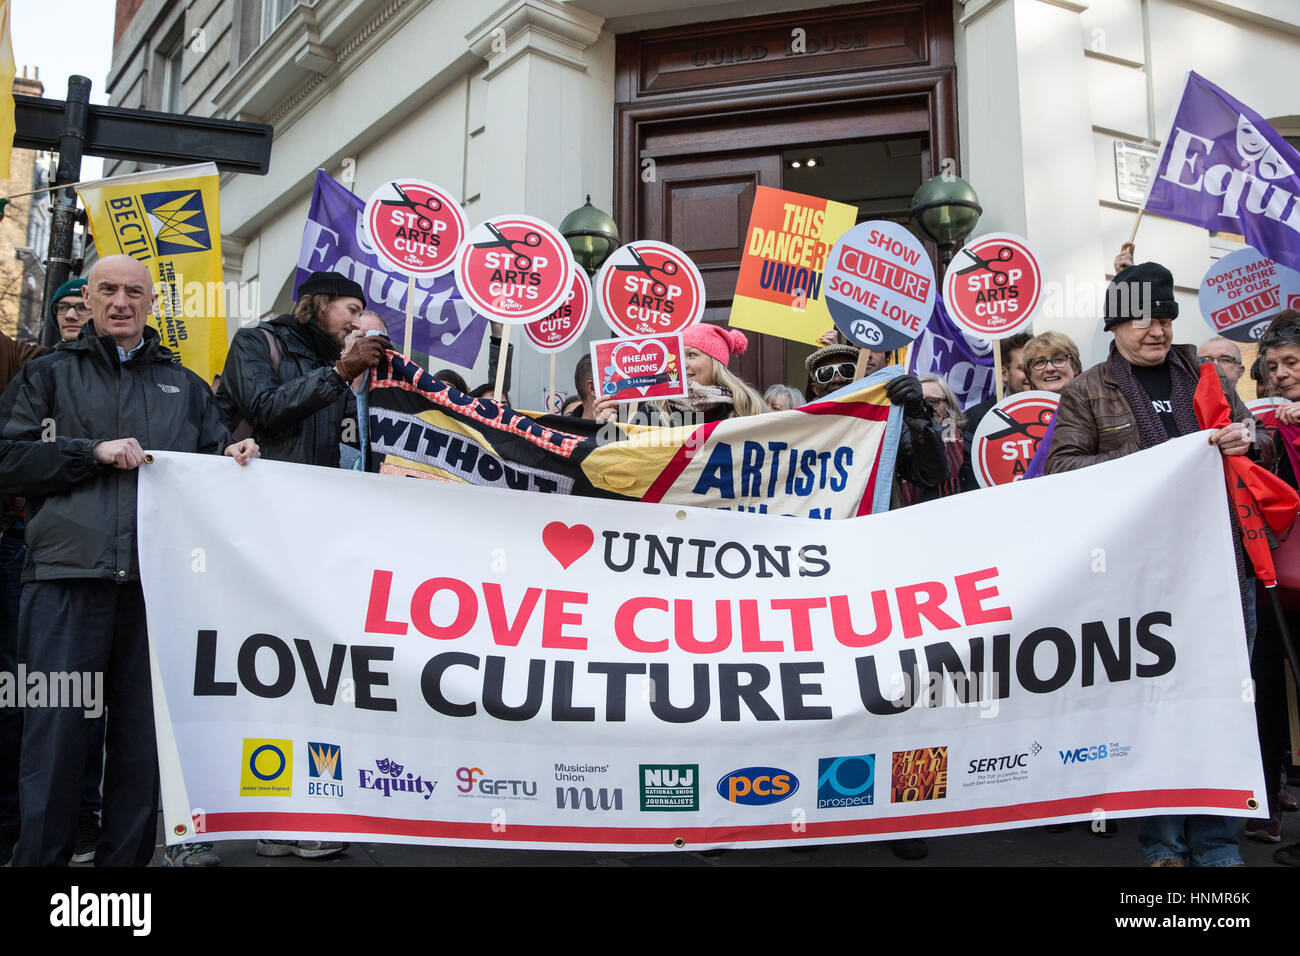 London, UK. 14th Feb, 2017. Trade unionists and supporters from the Show Culture Some Love campaign mark Show Culture - Stock Image